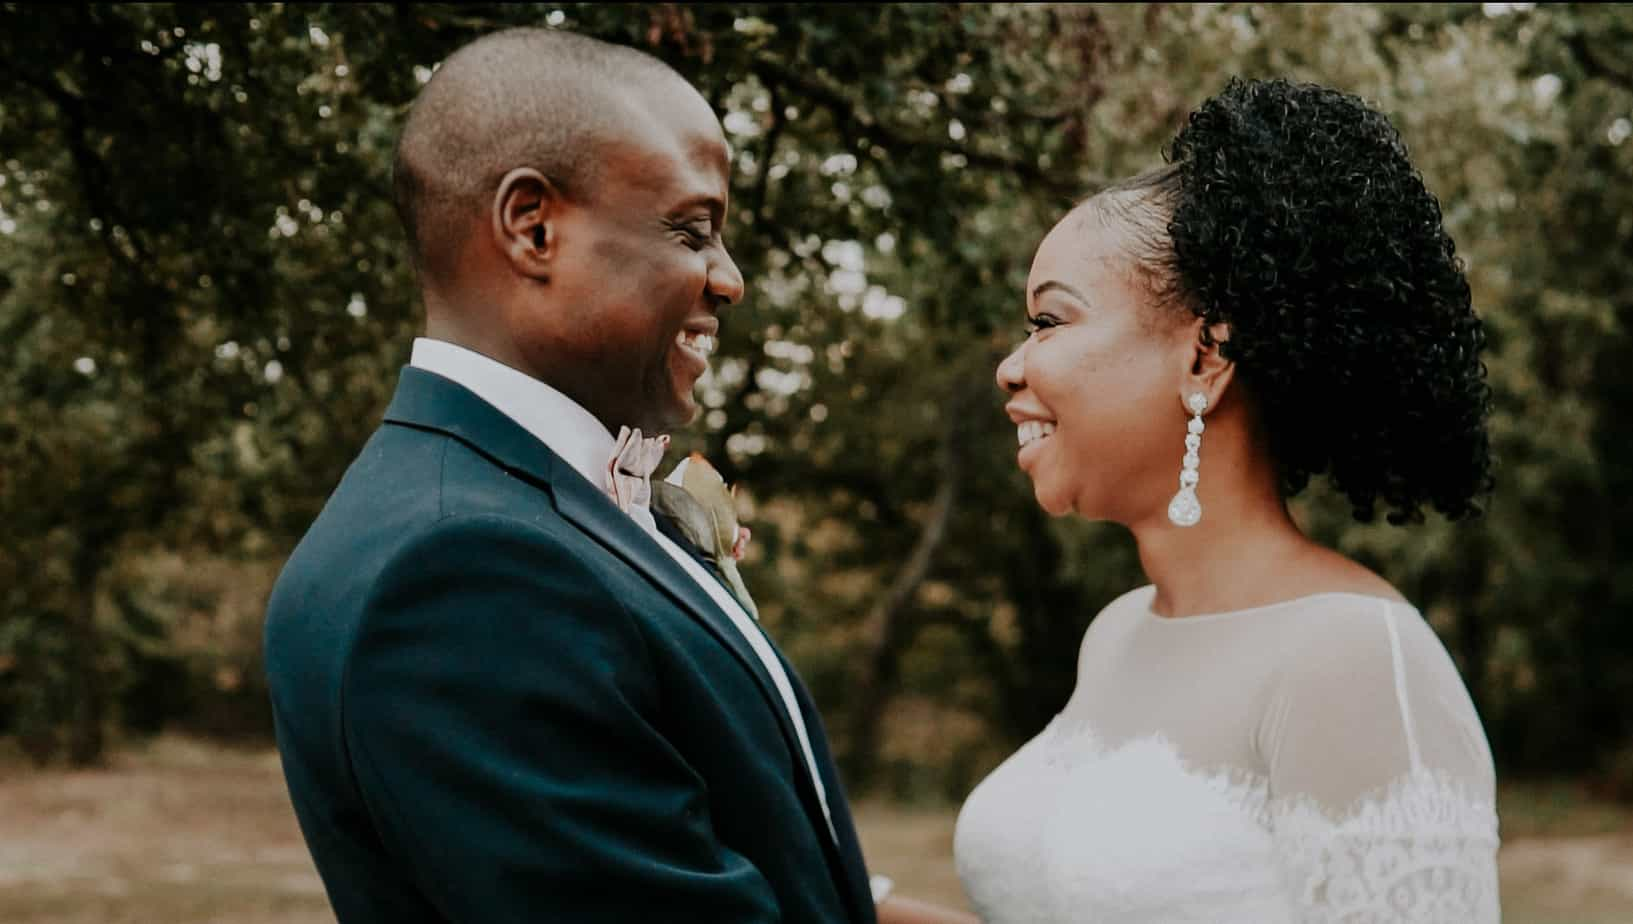 nigerian bride and groom looking at each other